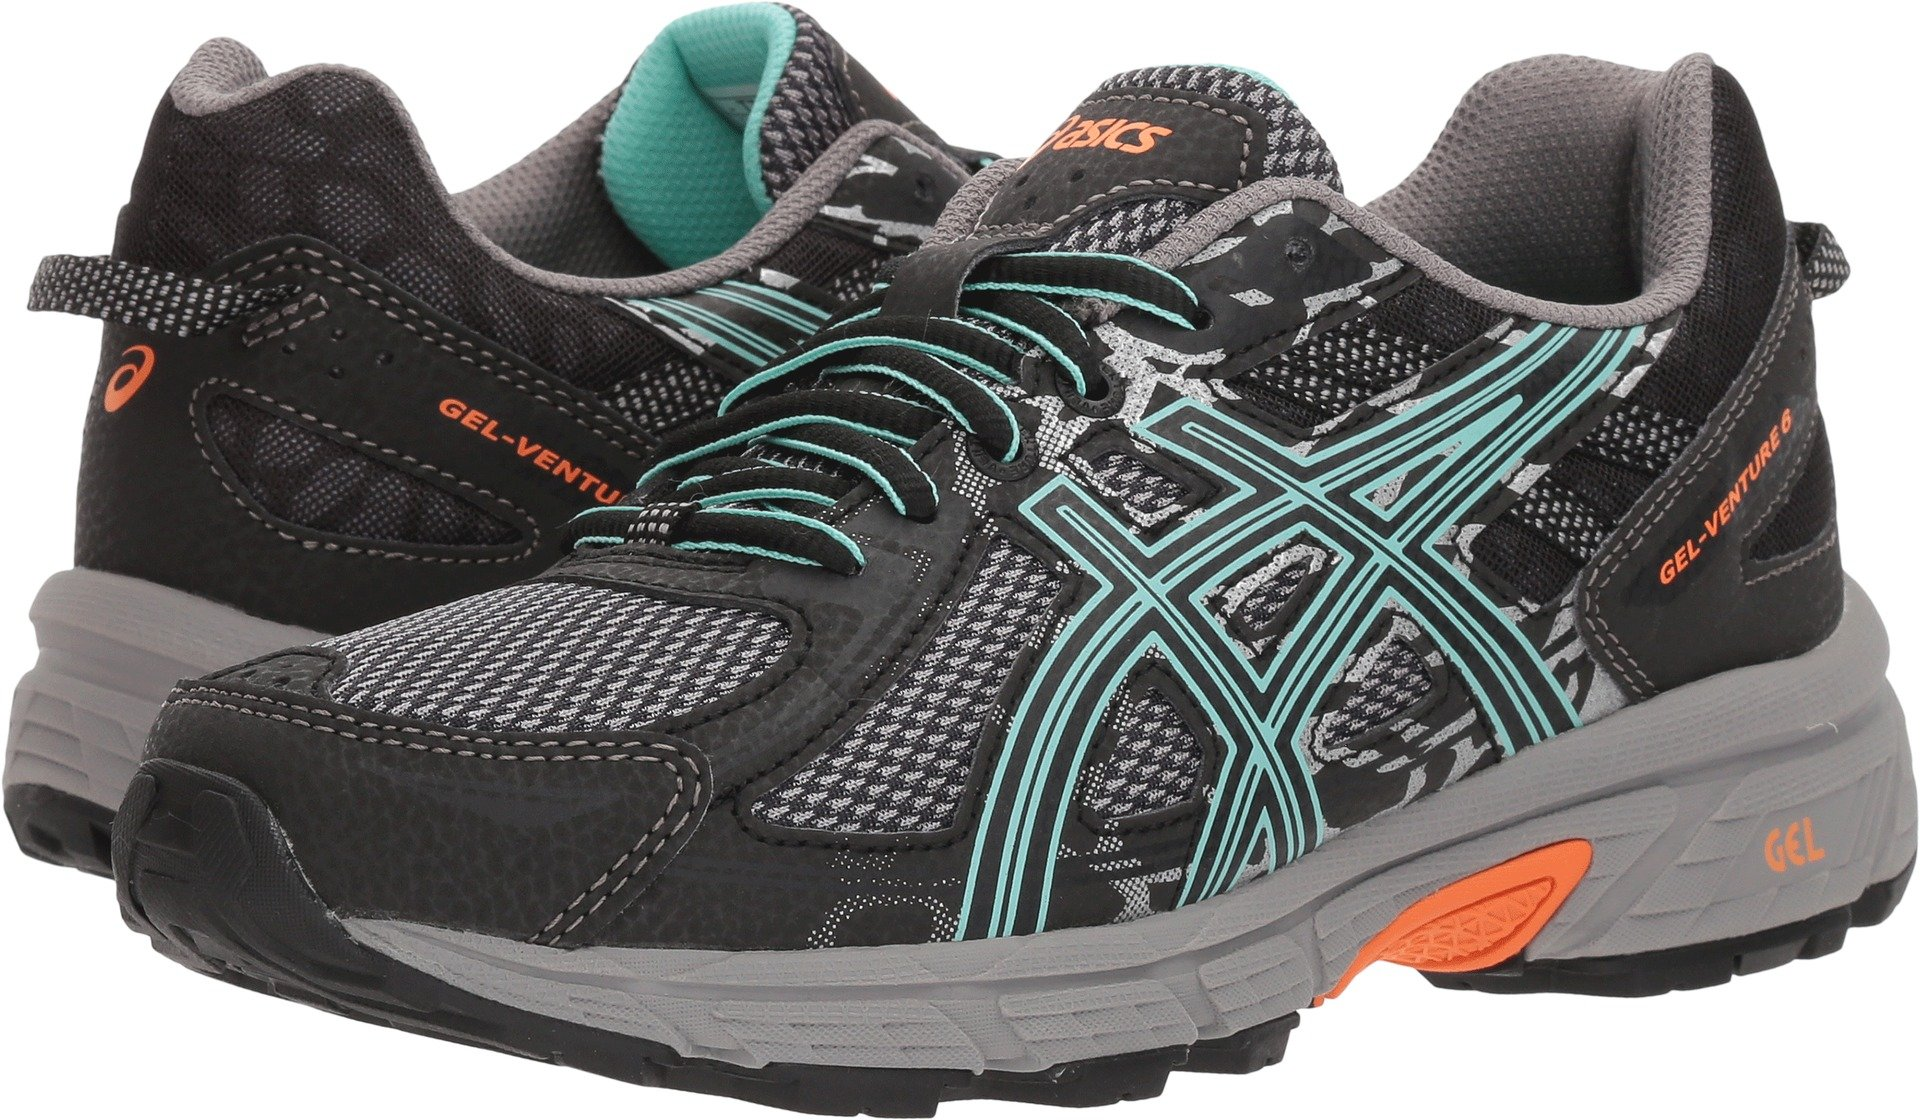 ASICS Womens Gel-Venture 6 Running Shoes Black/Ice Green/Orange 5 B(M) US